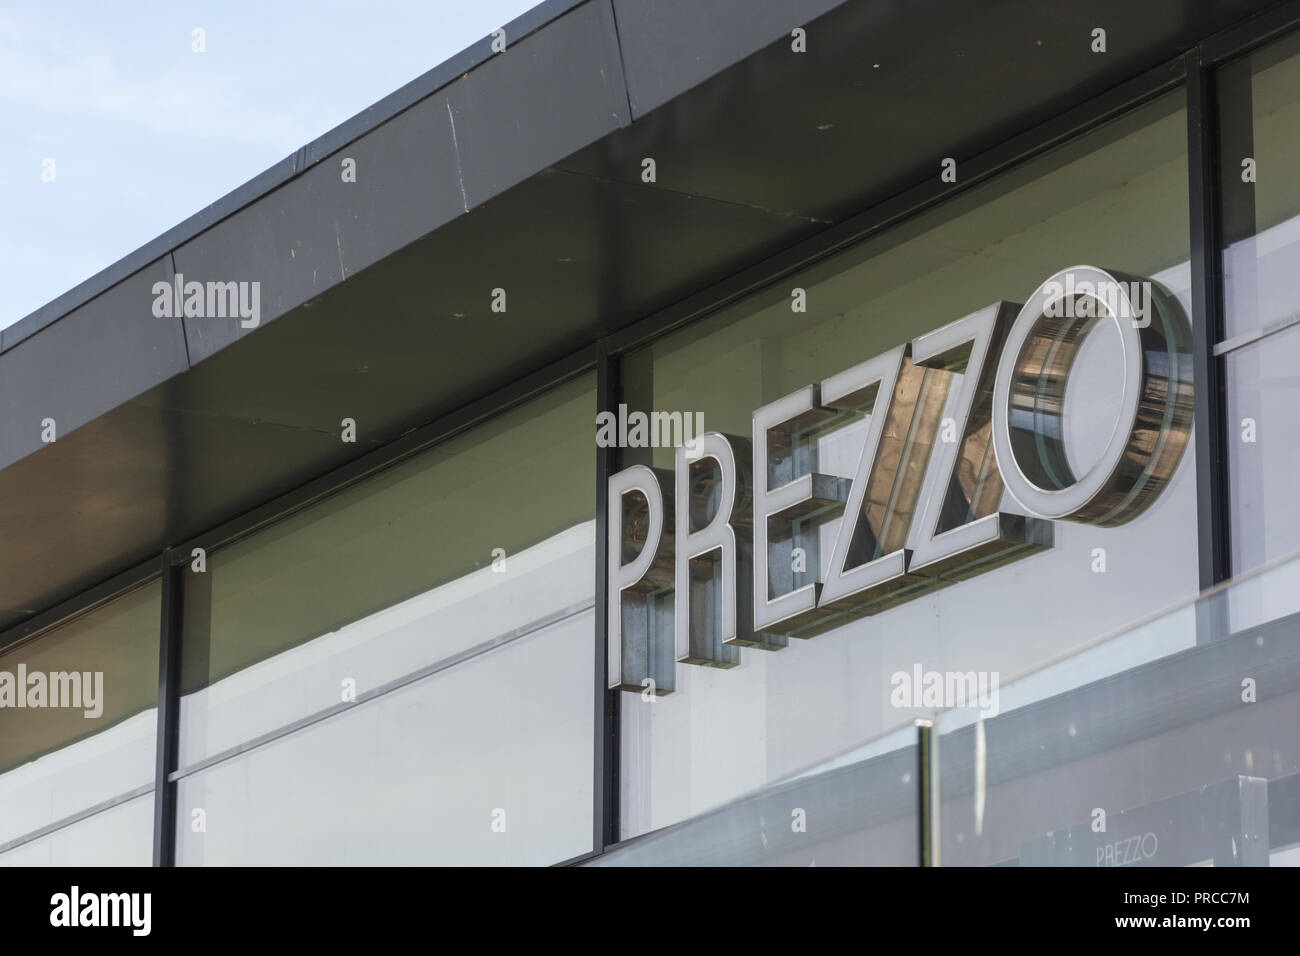 Scenes from around Newquay town centre, Cornwall. Closed PREZZO restaurant in Newquay. Casual dining sector crisis, casual dining concept. Stock Photo